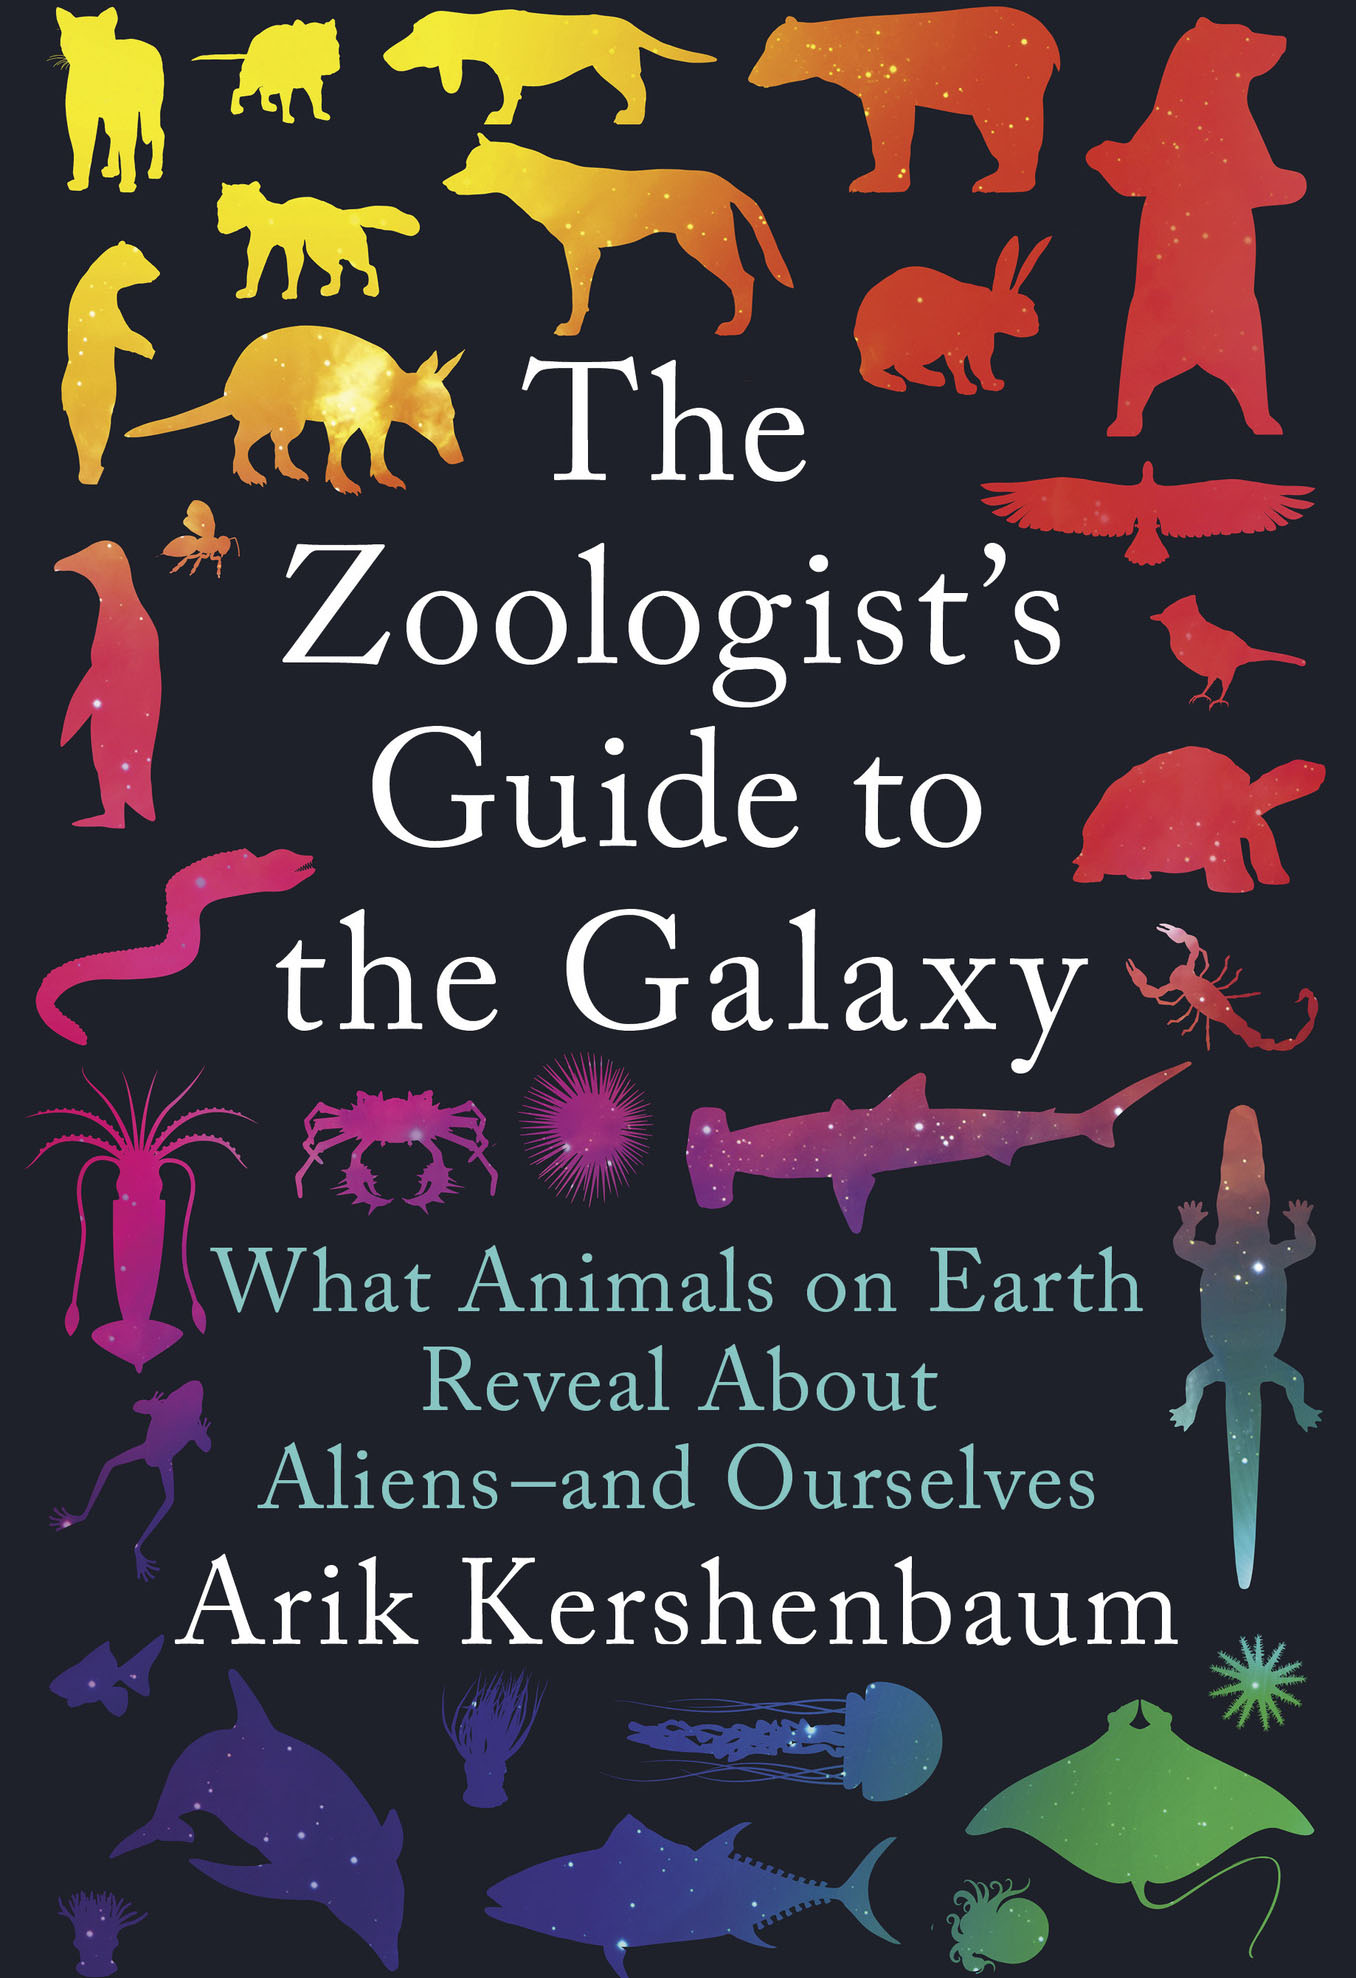 zoologist guide book cover unzized